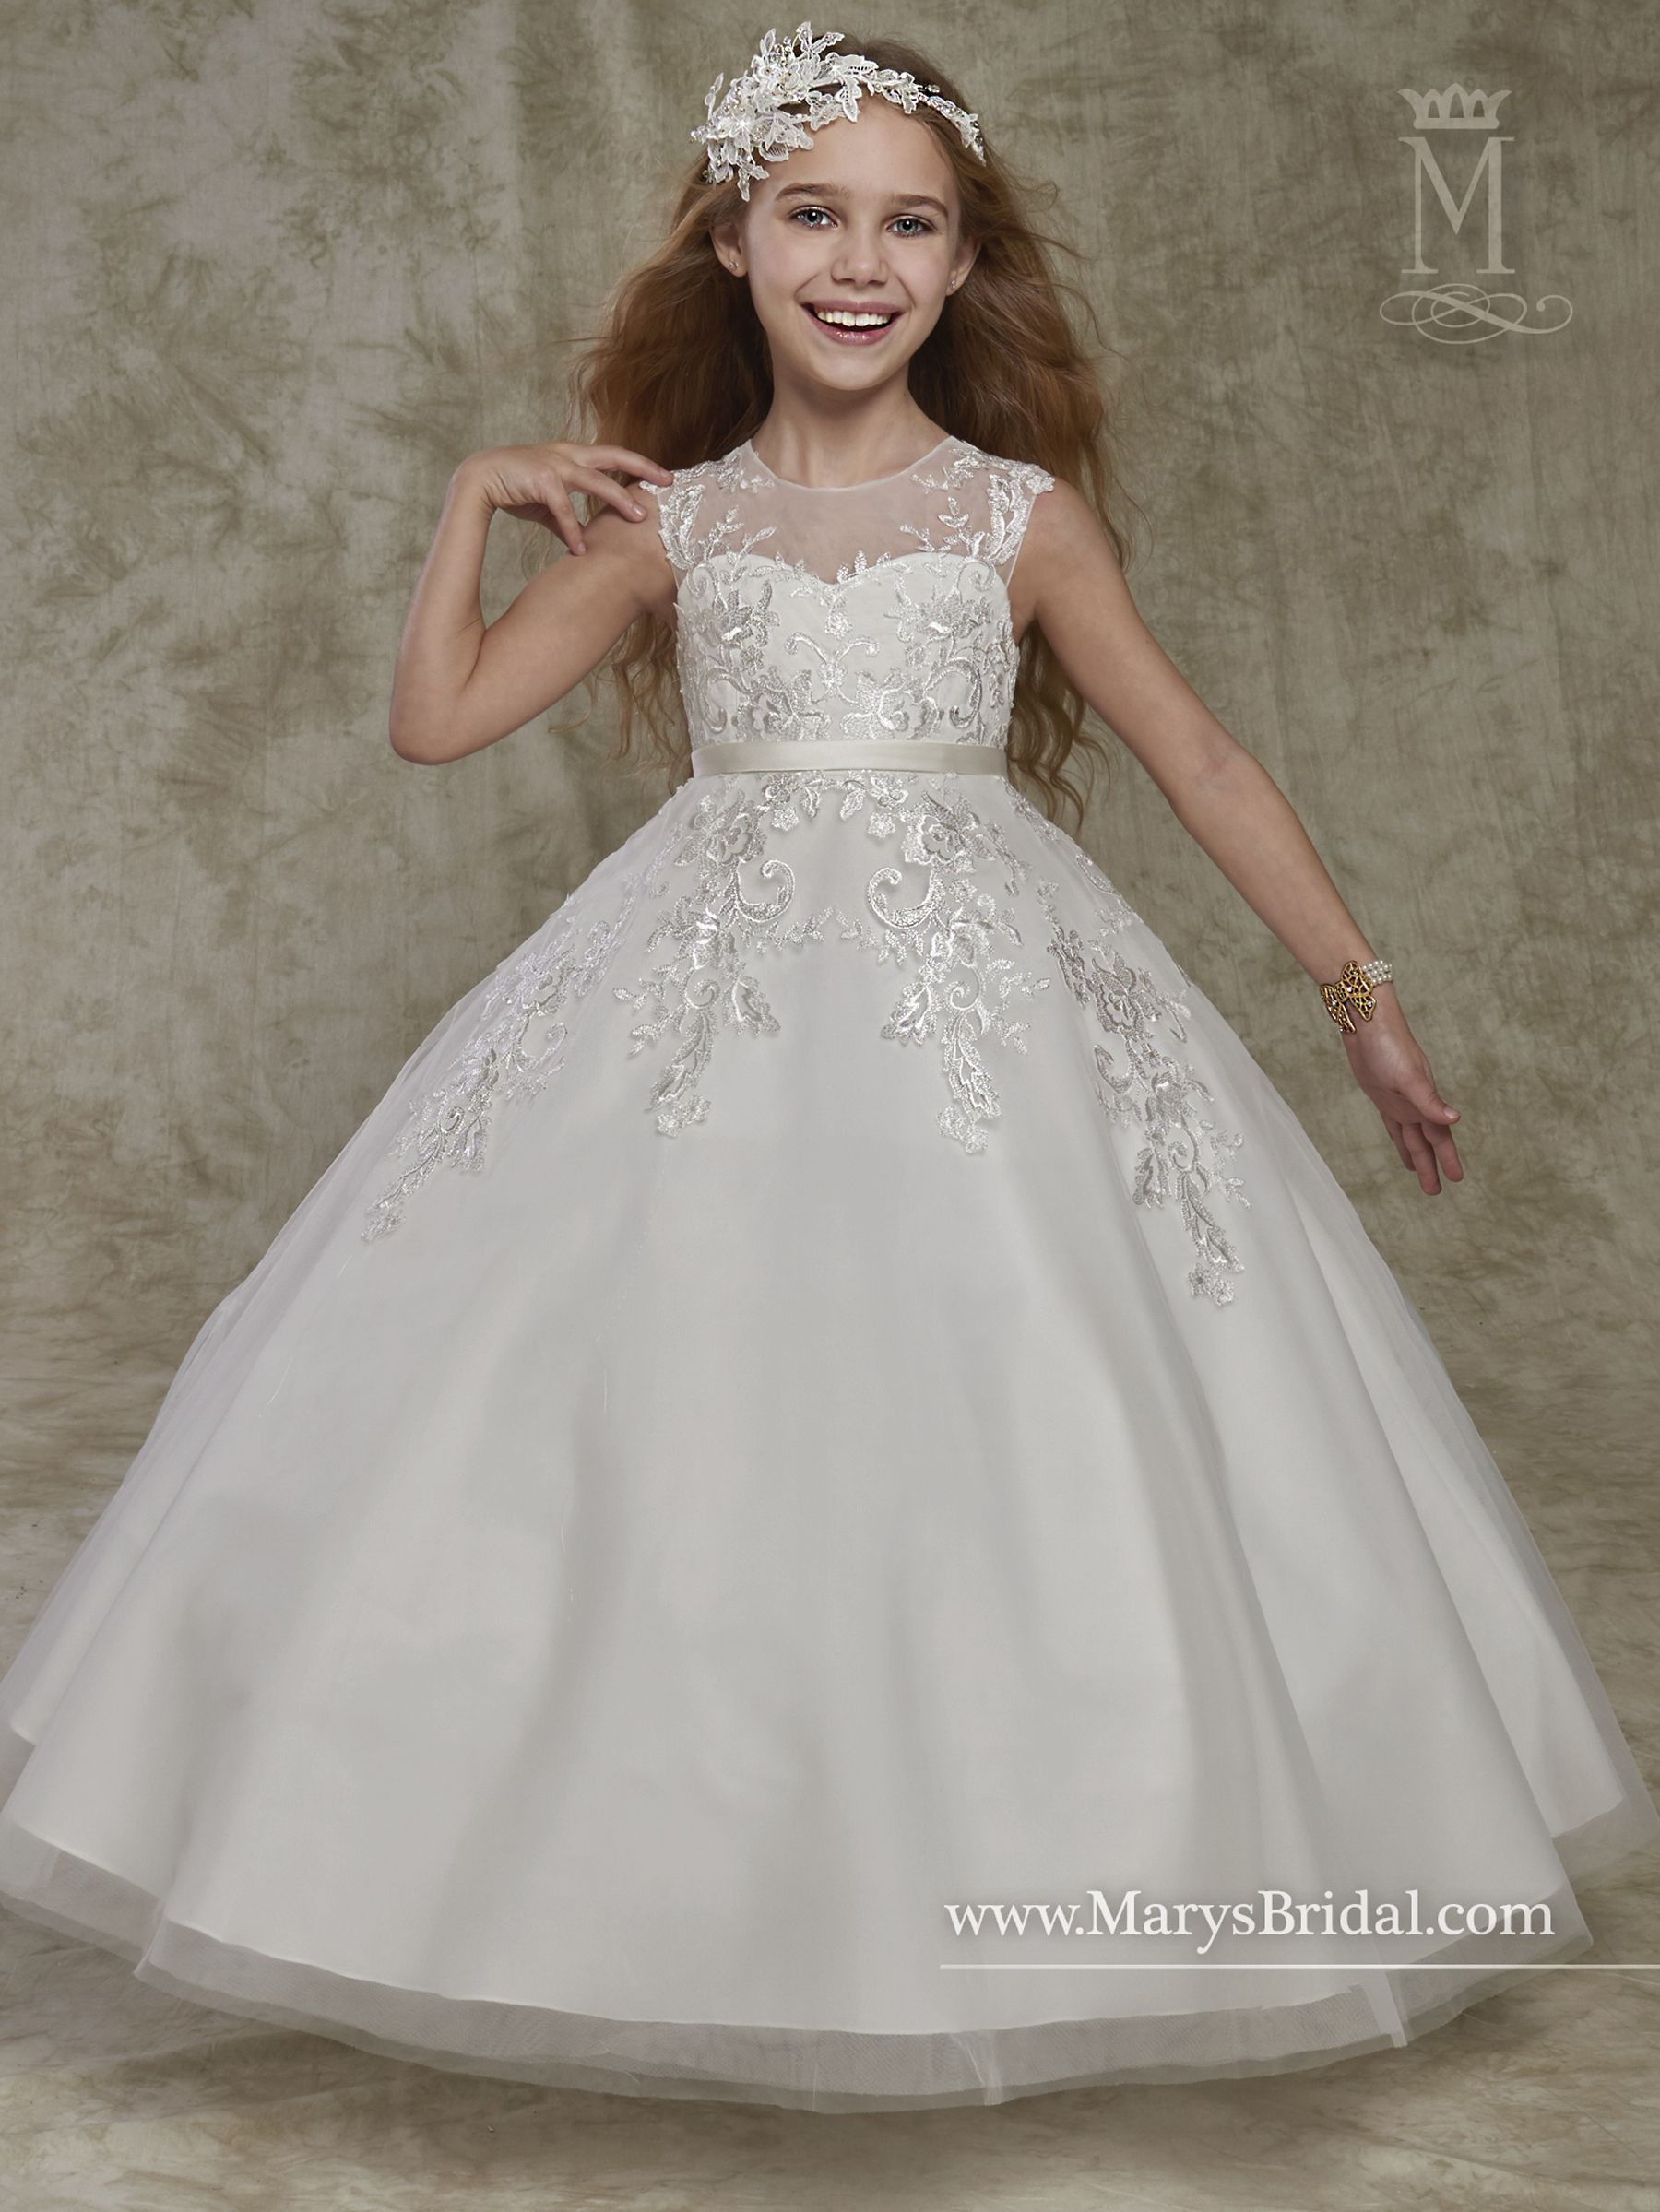 363647eba Tulle and lace flower girl ball gown with illusion jewel neck line, belt,  and back zipper closure.